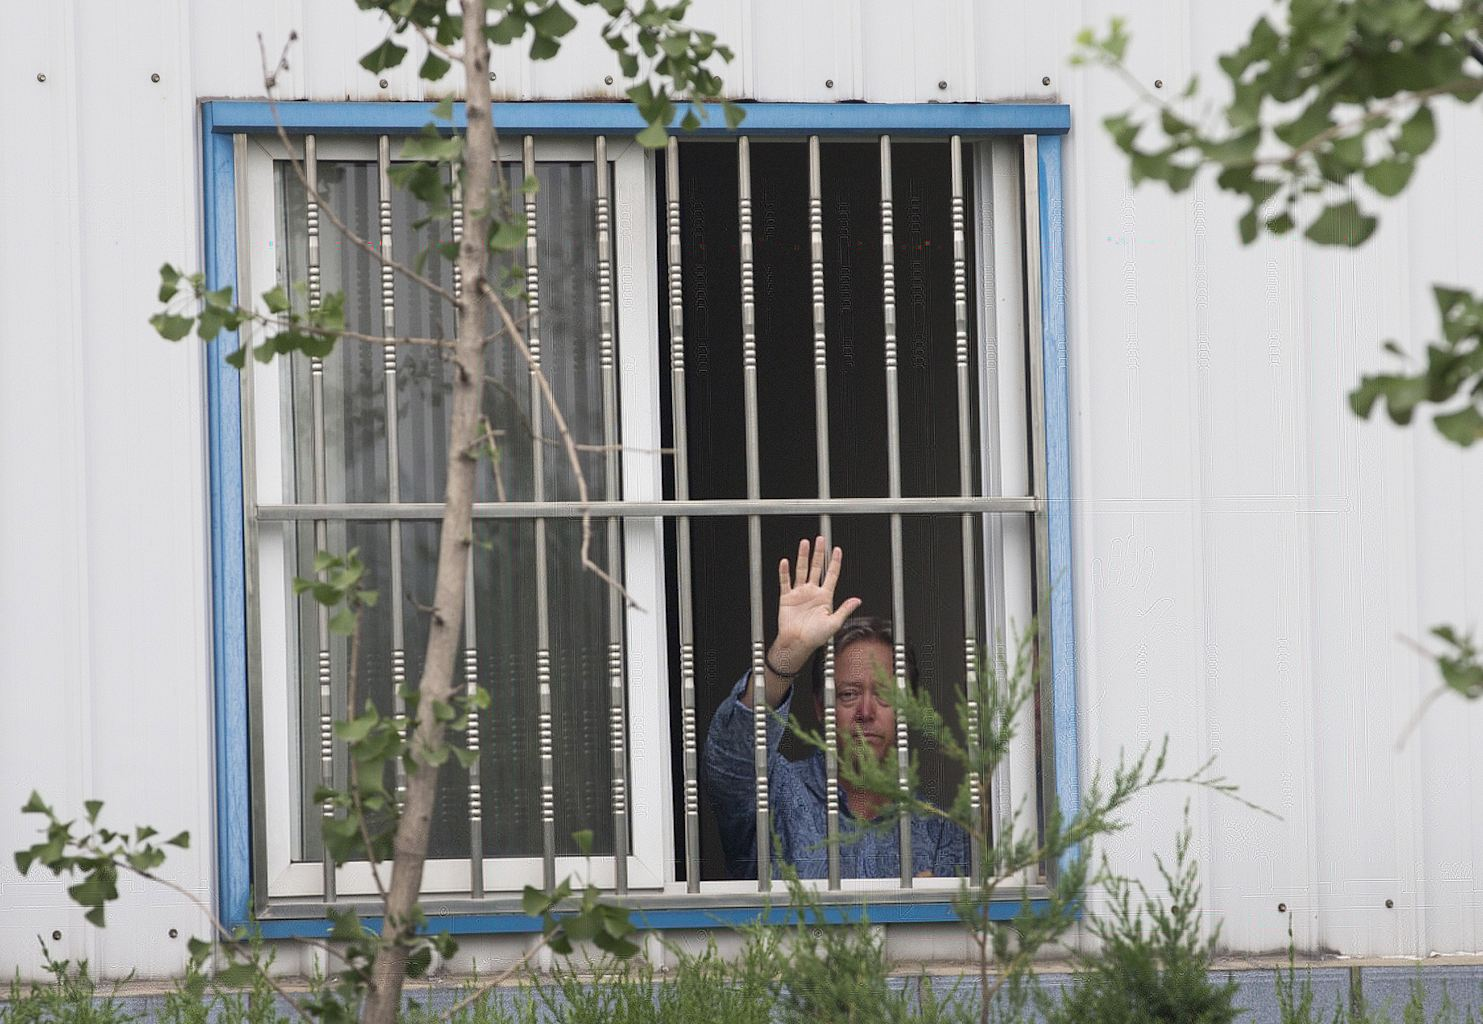 US Factory Boss Held Captive by Chinese Workers